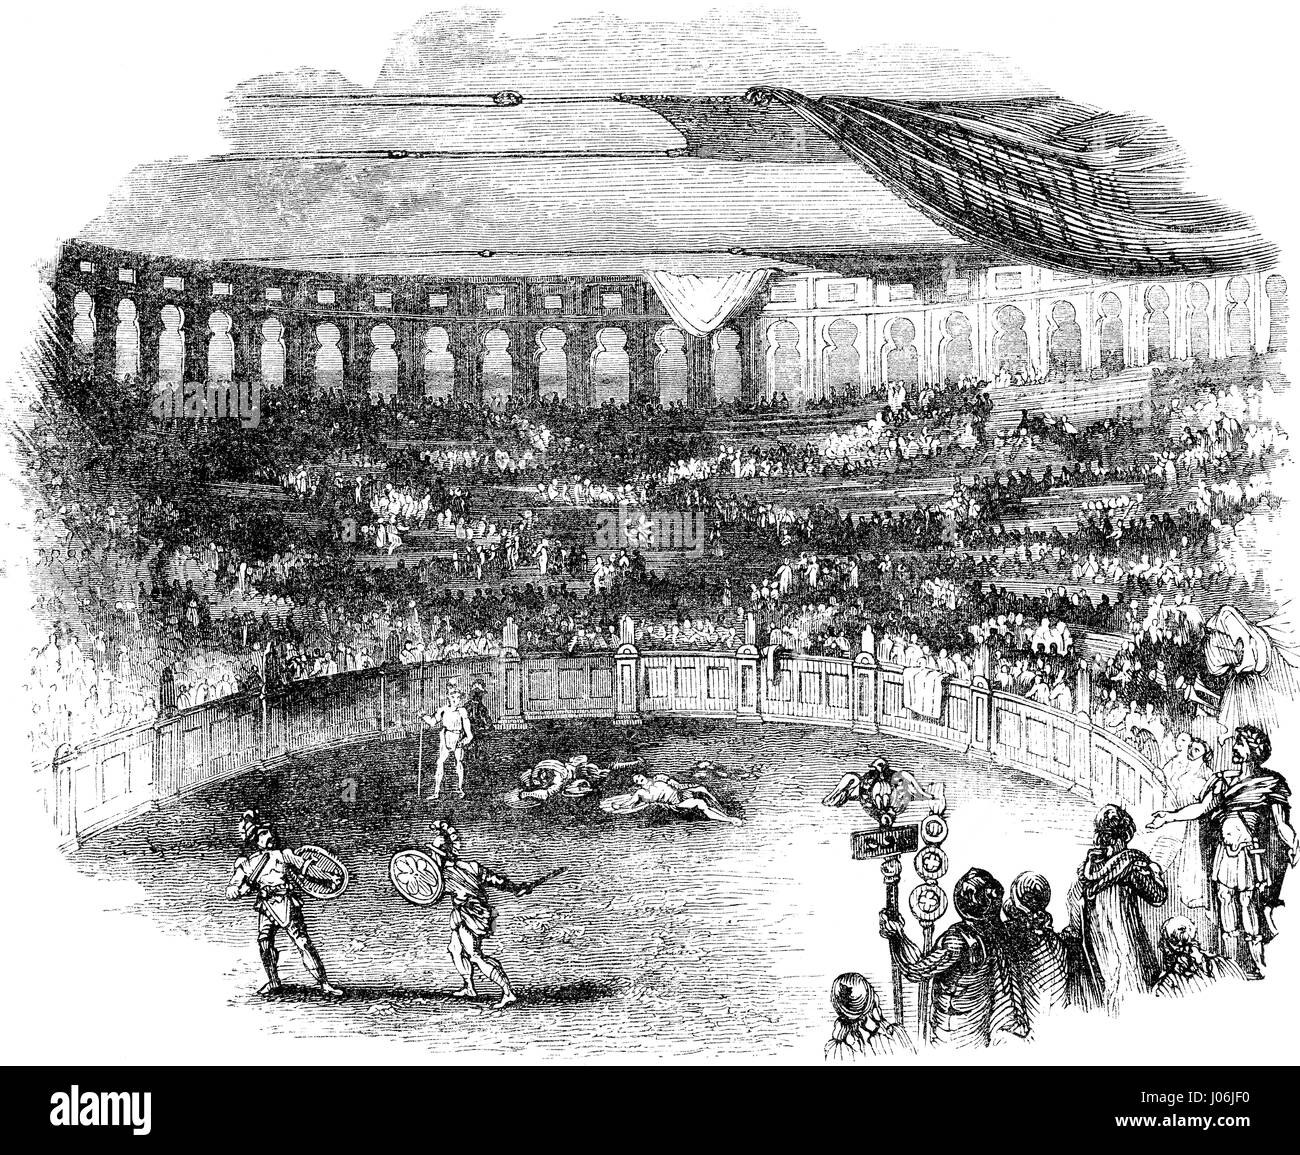 The Games of Herod the Great in the theatre of Caesarea Maritima - Stock Image